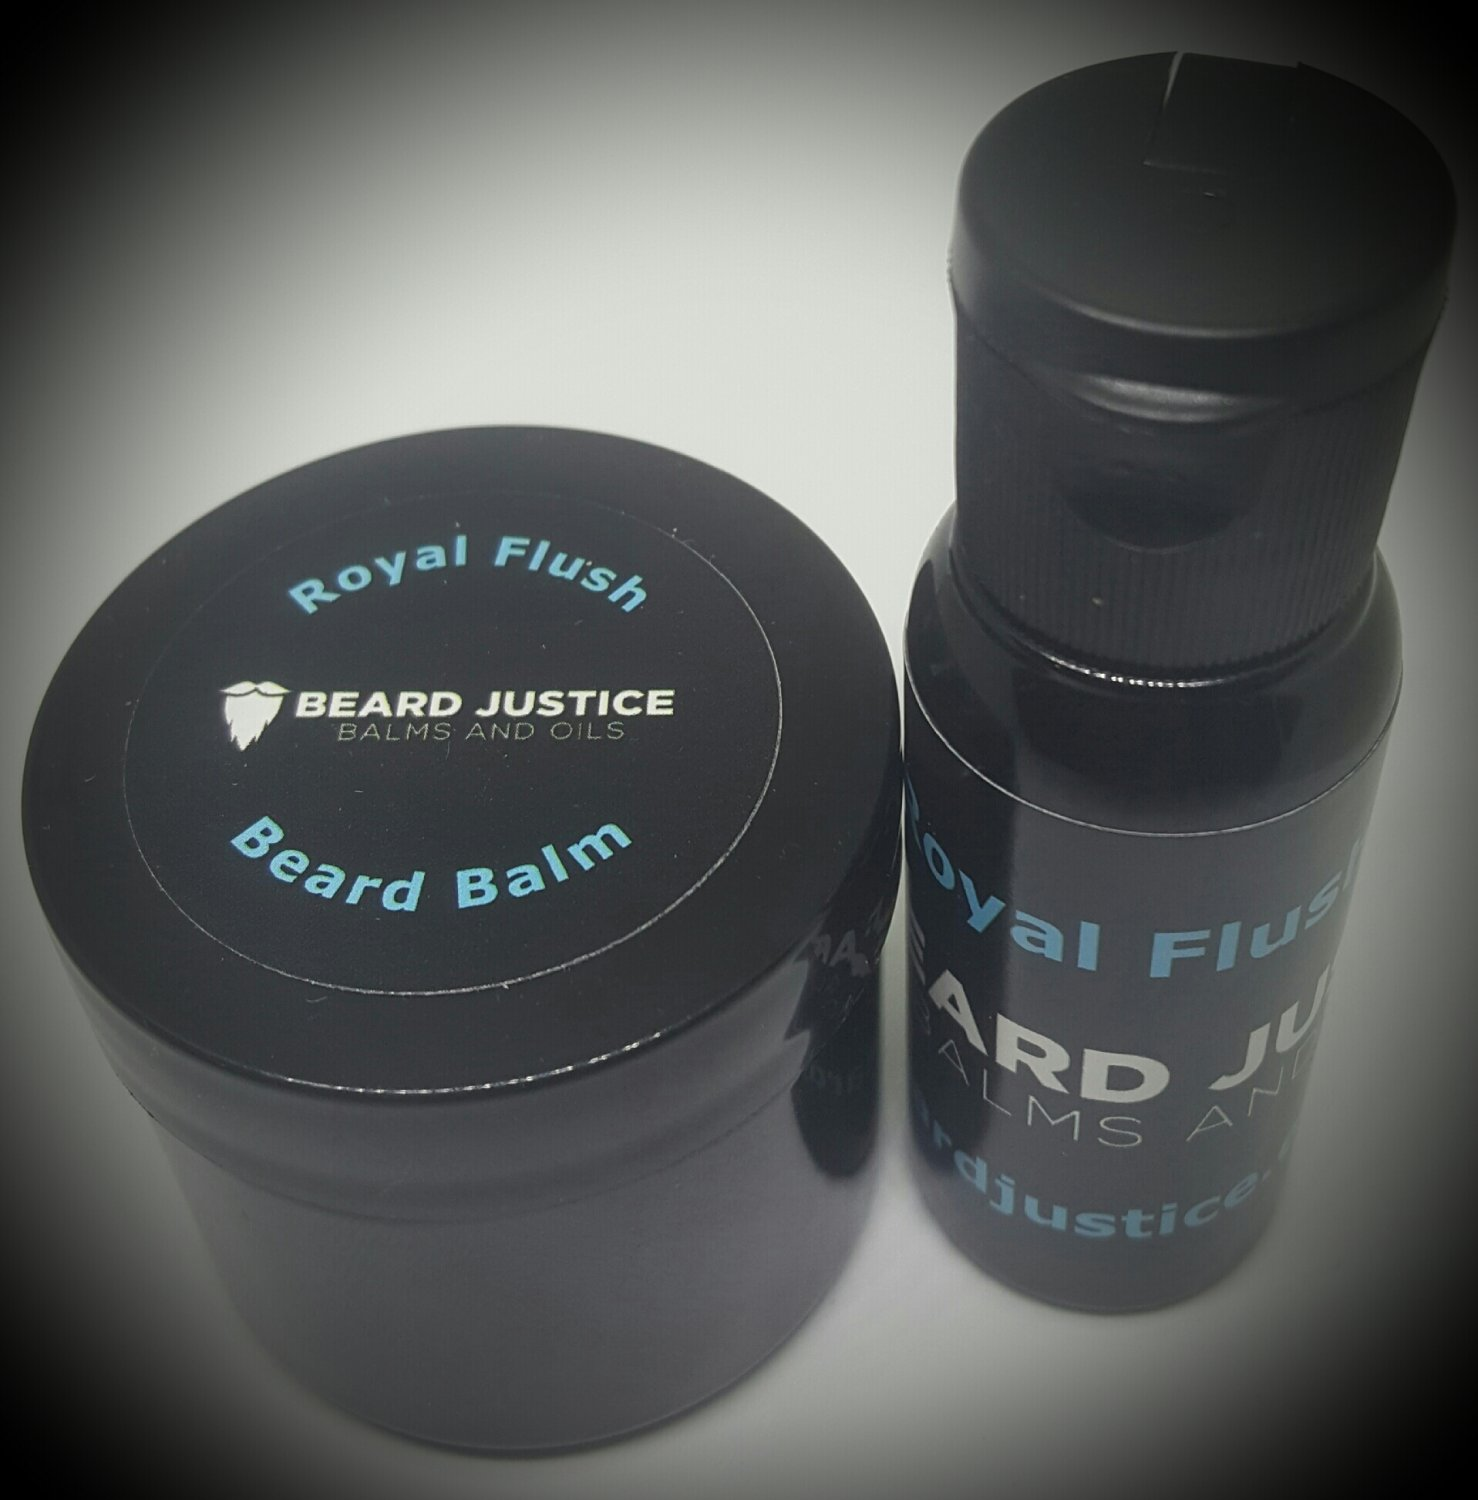 Royal Flush Beard Balm and Oil